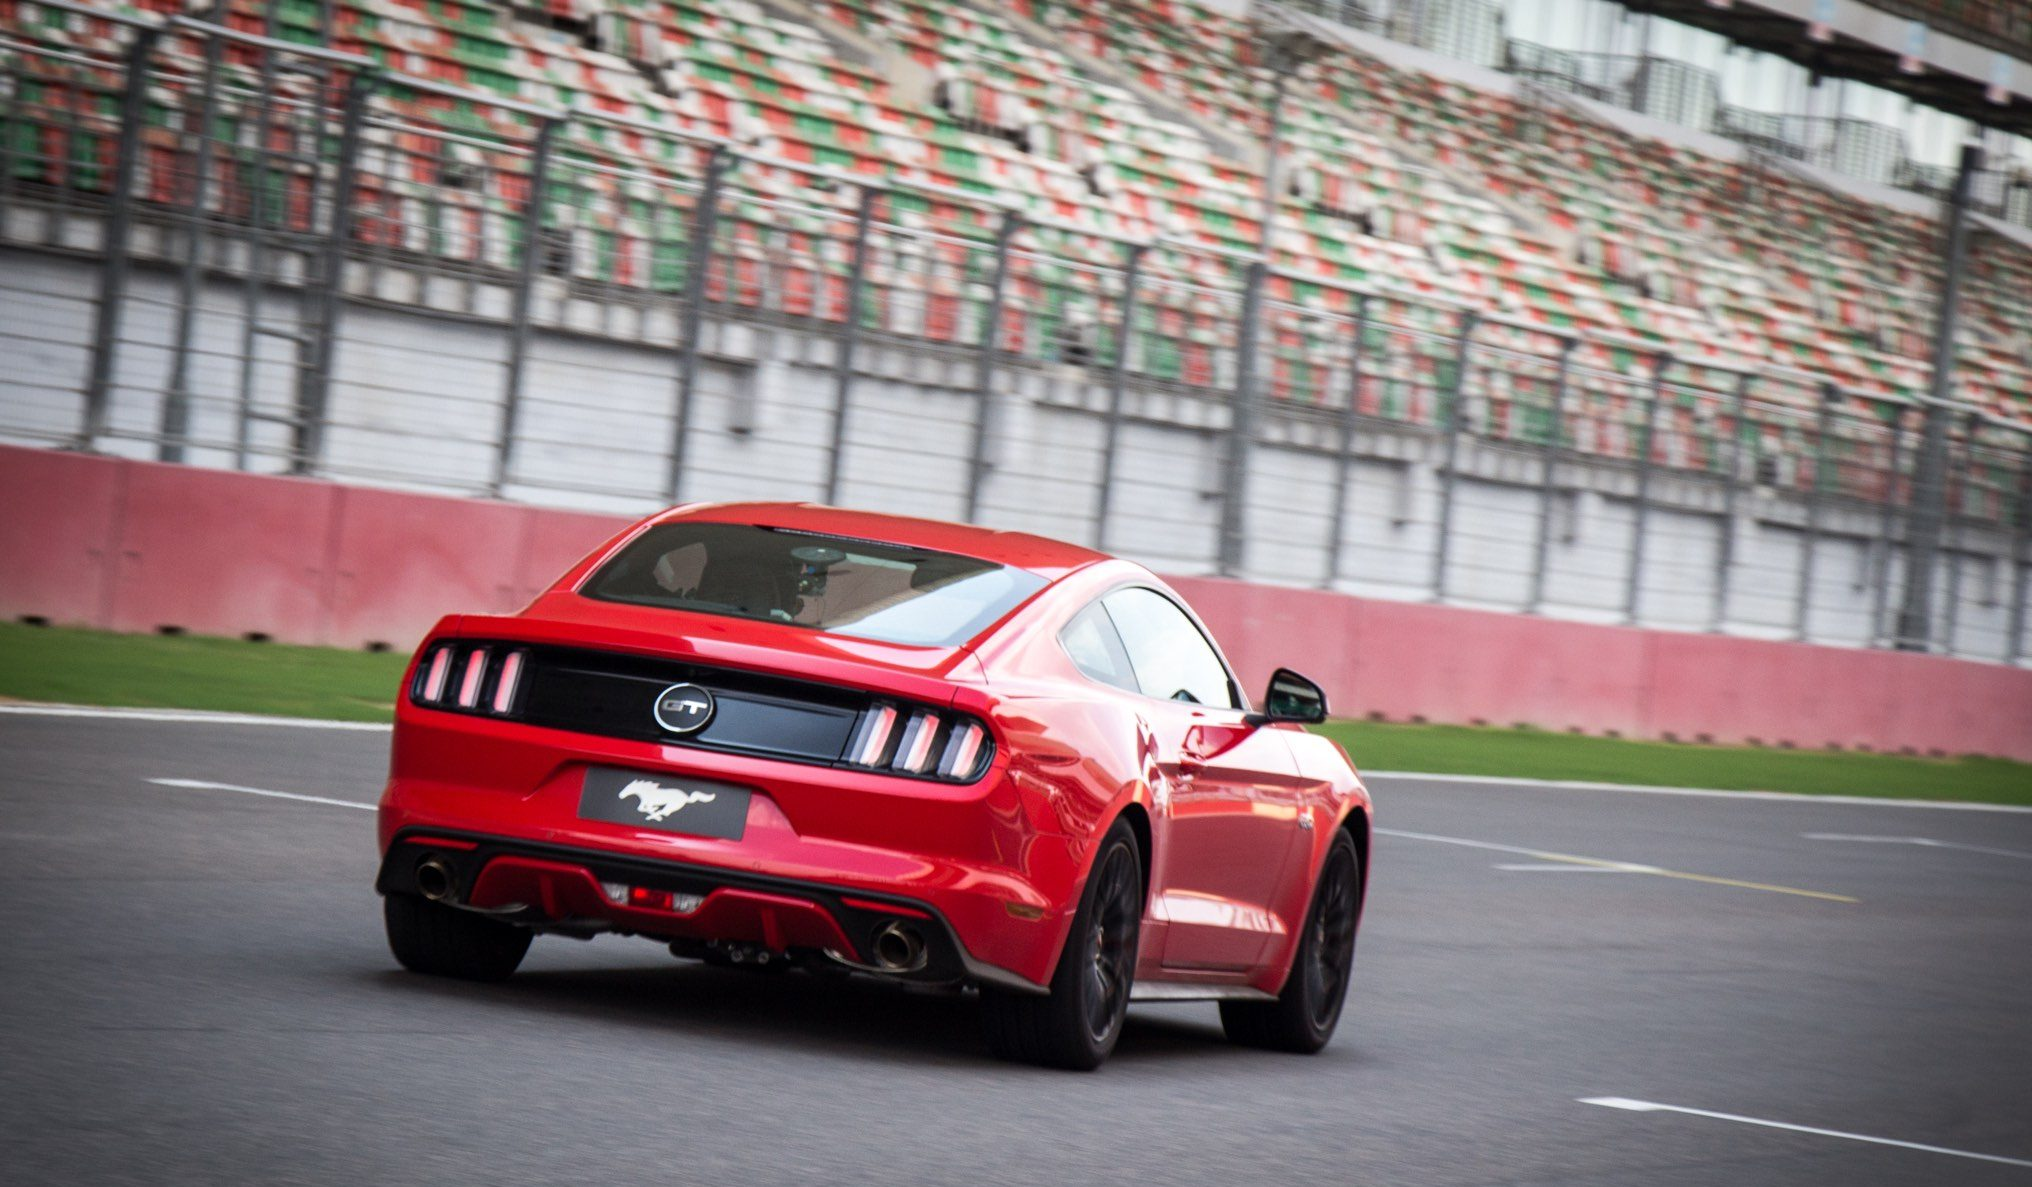 Ford Mustang GT Finally Launched in India8